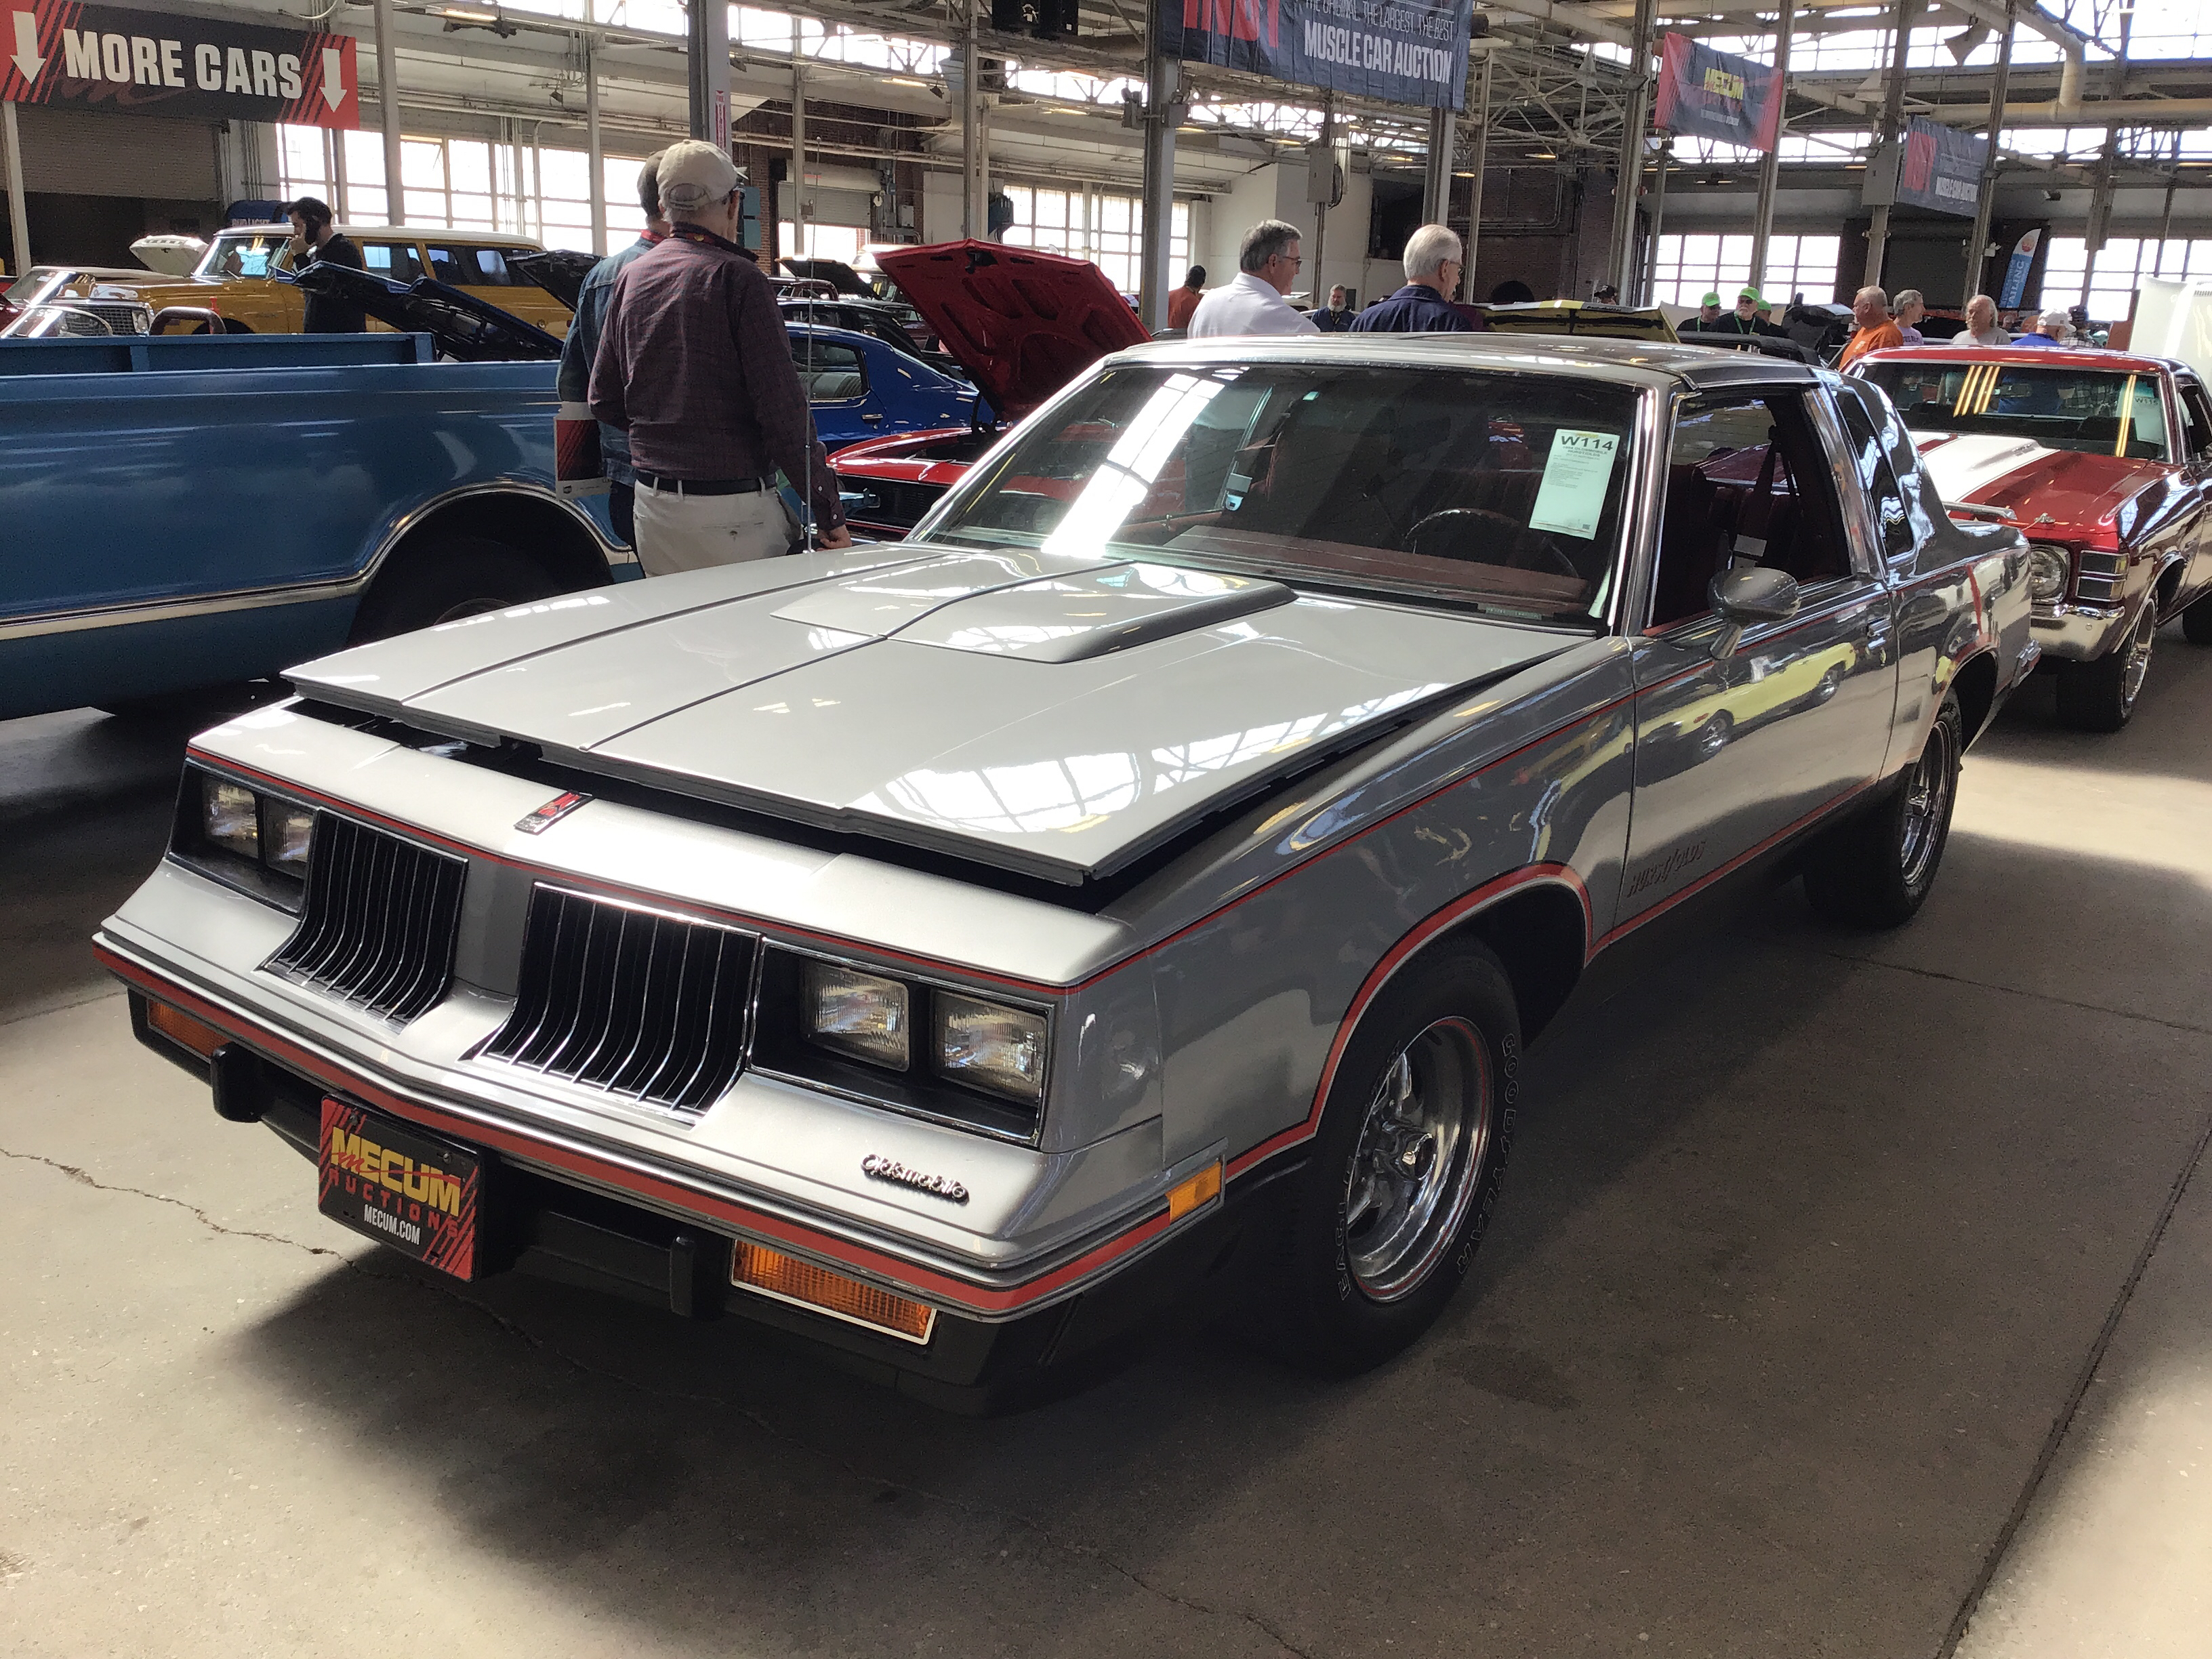 1987 Oldsmobile Cutlass 4-4-2 Values | Hagerty Valuation Tool®